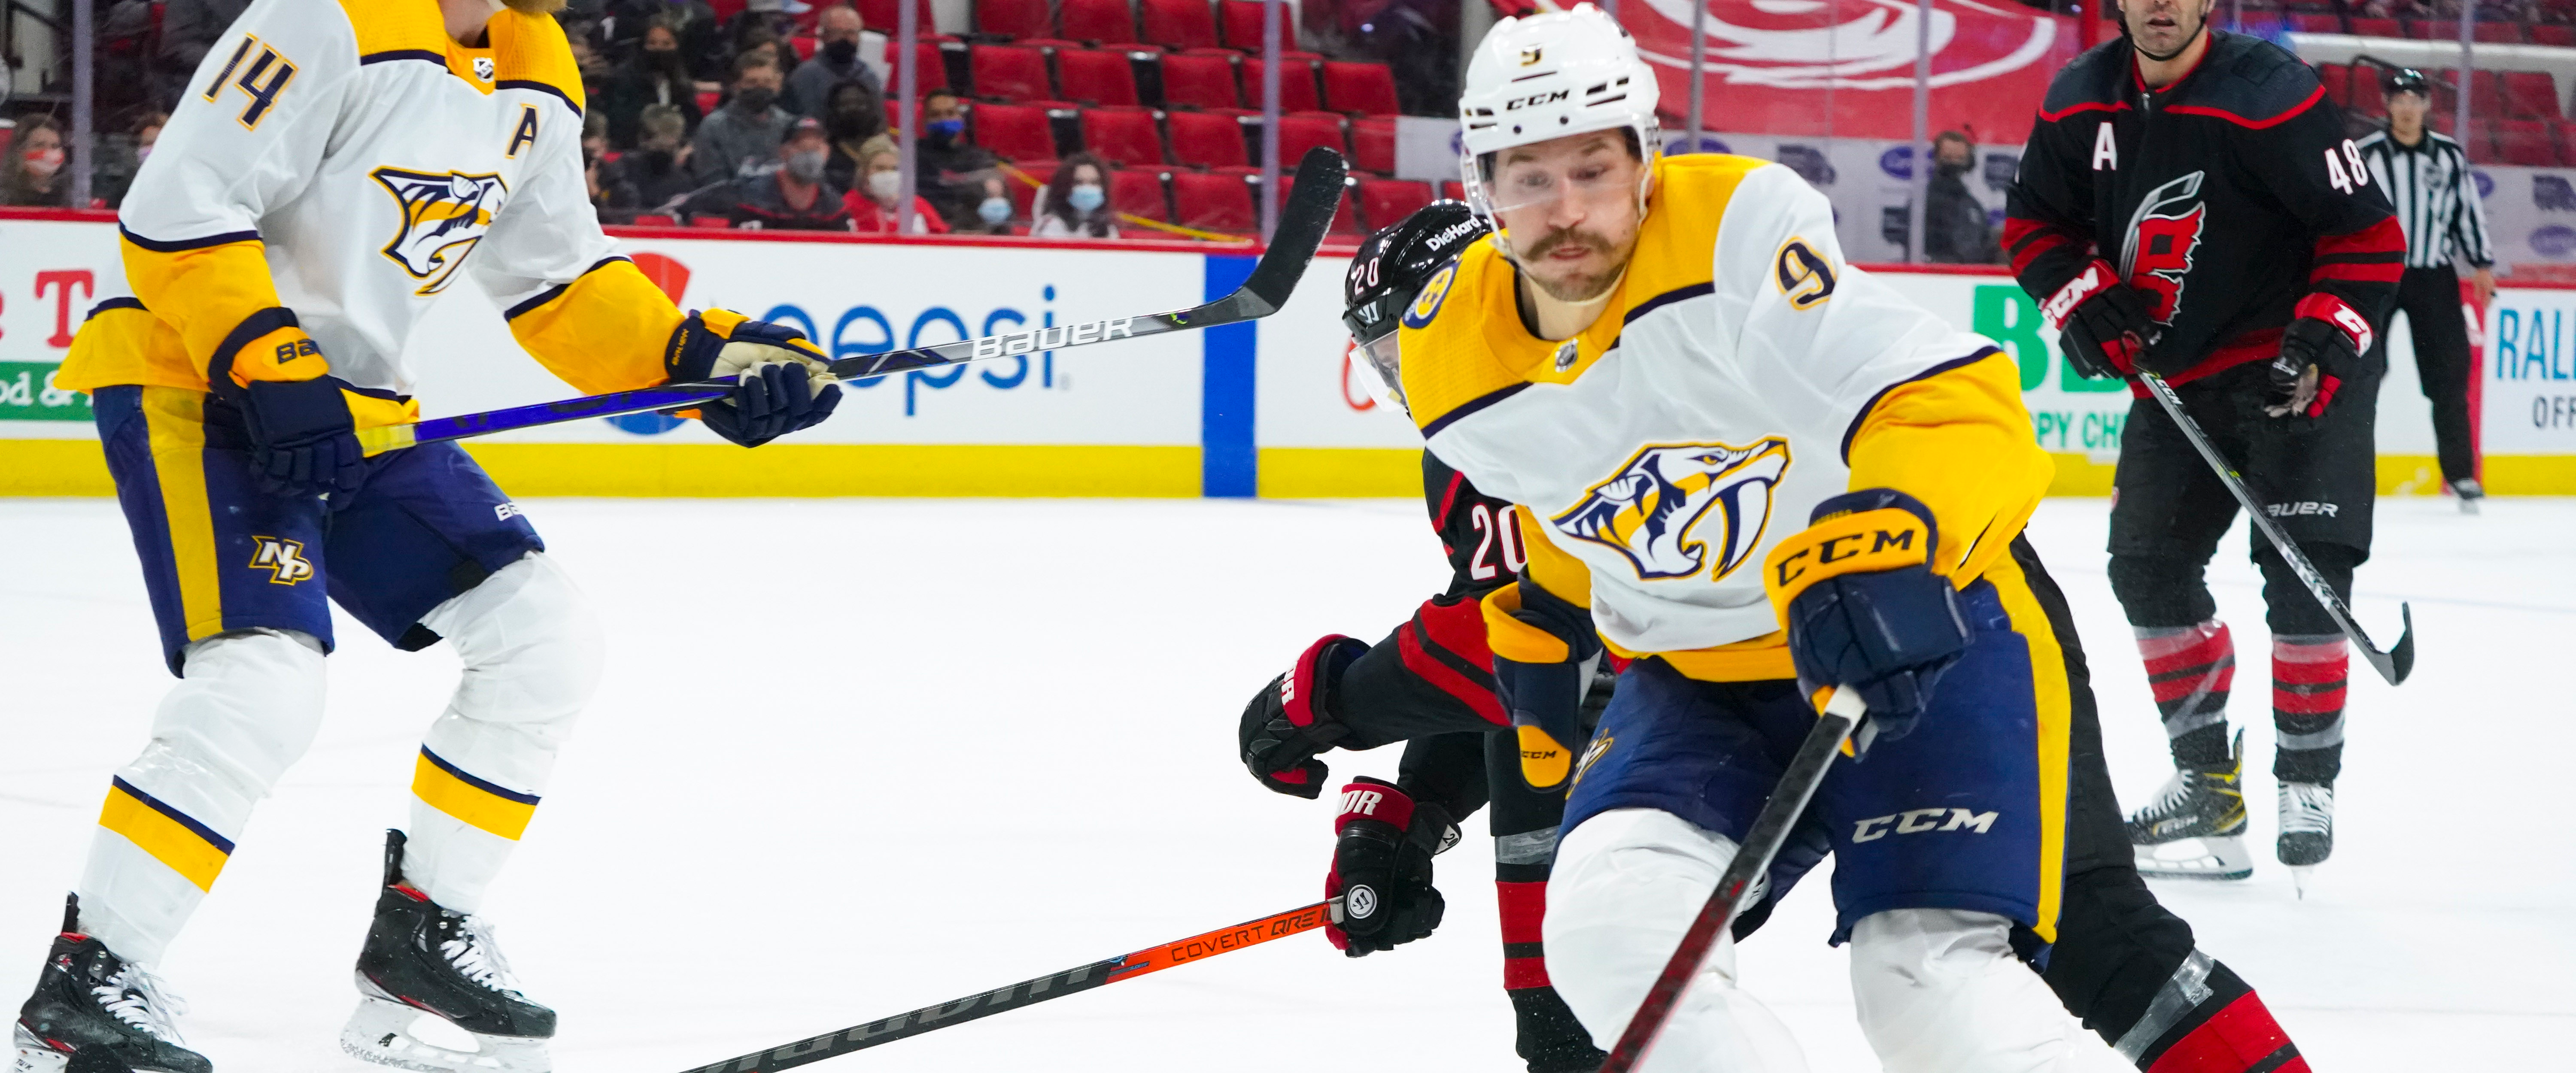 Predators: Will lineup changes make a difference in Game 2?